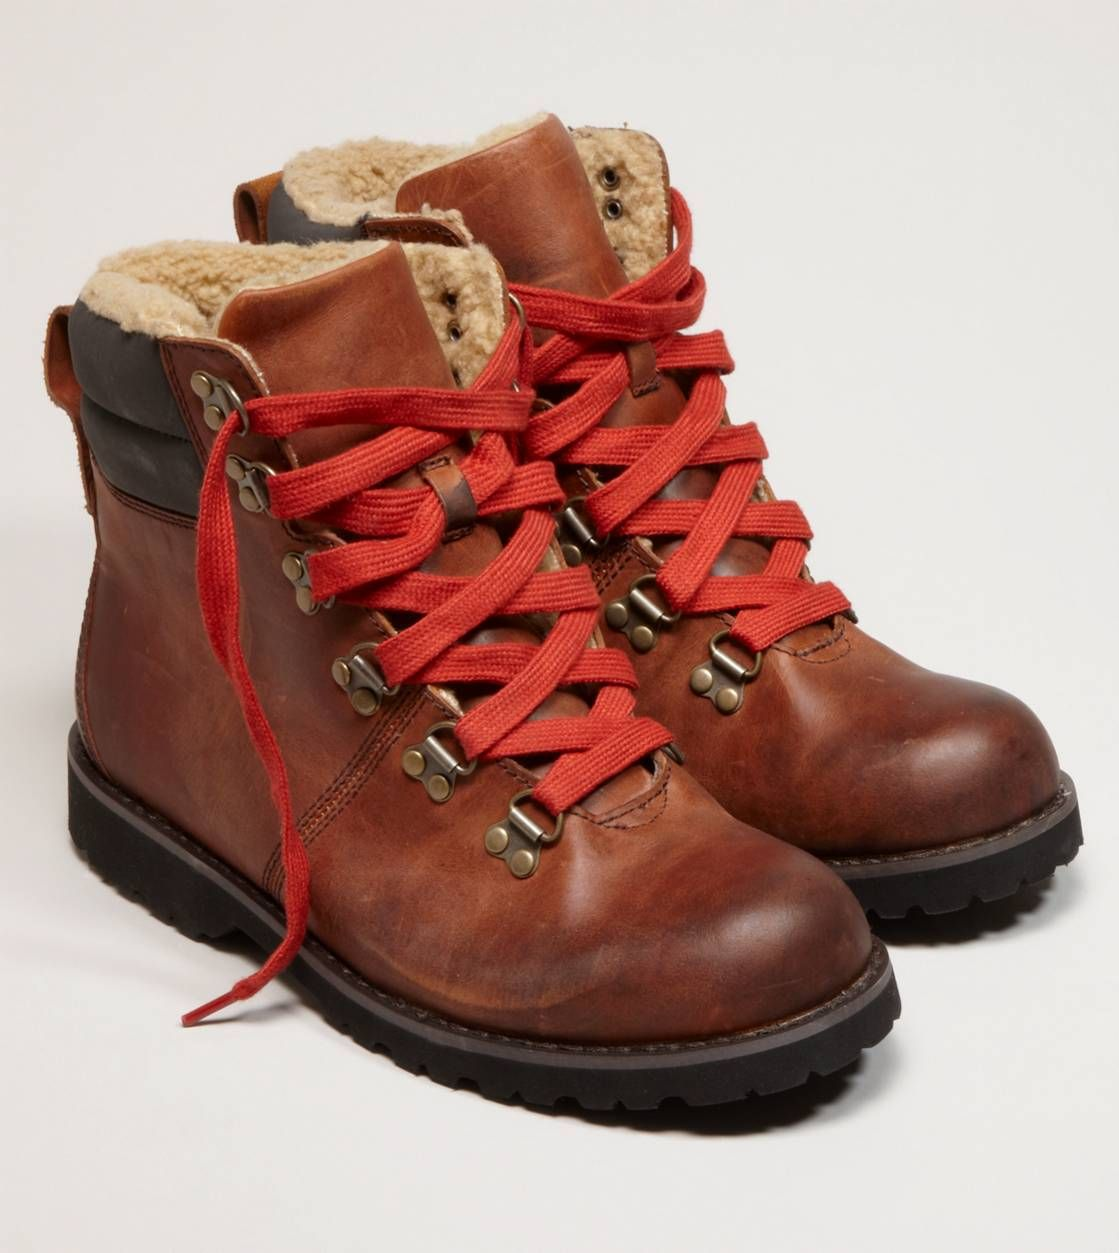 I love these boots with the red laces 9b880ac72